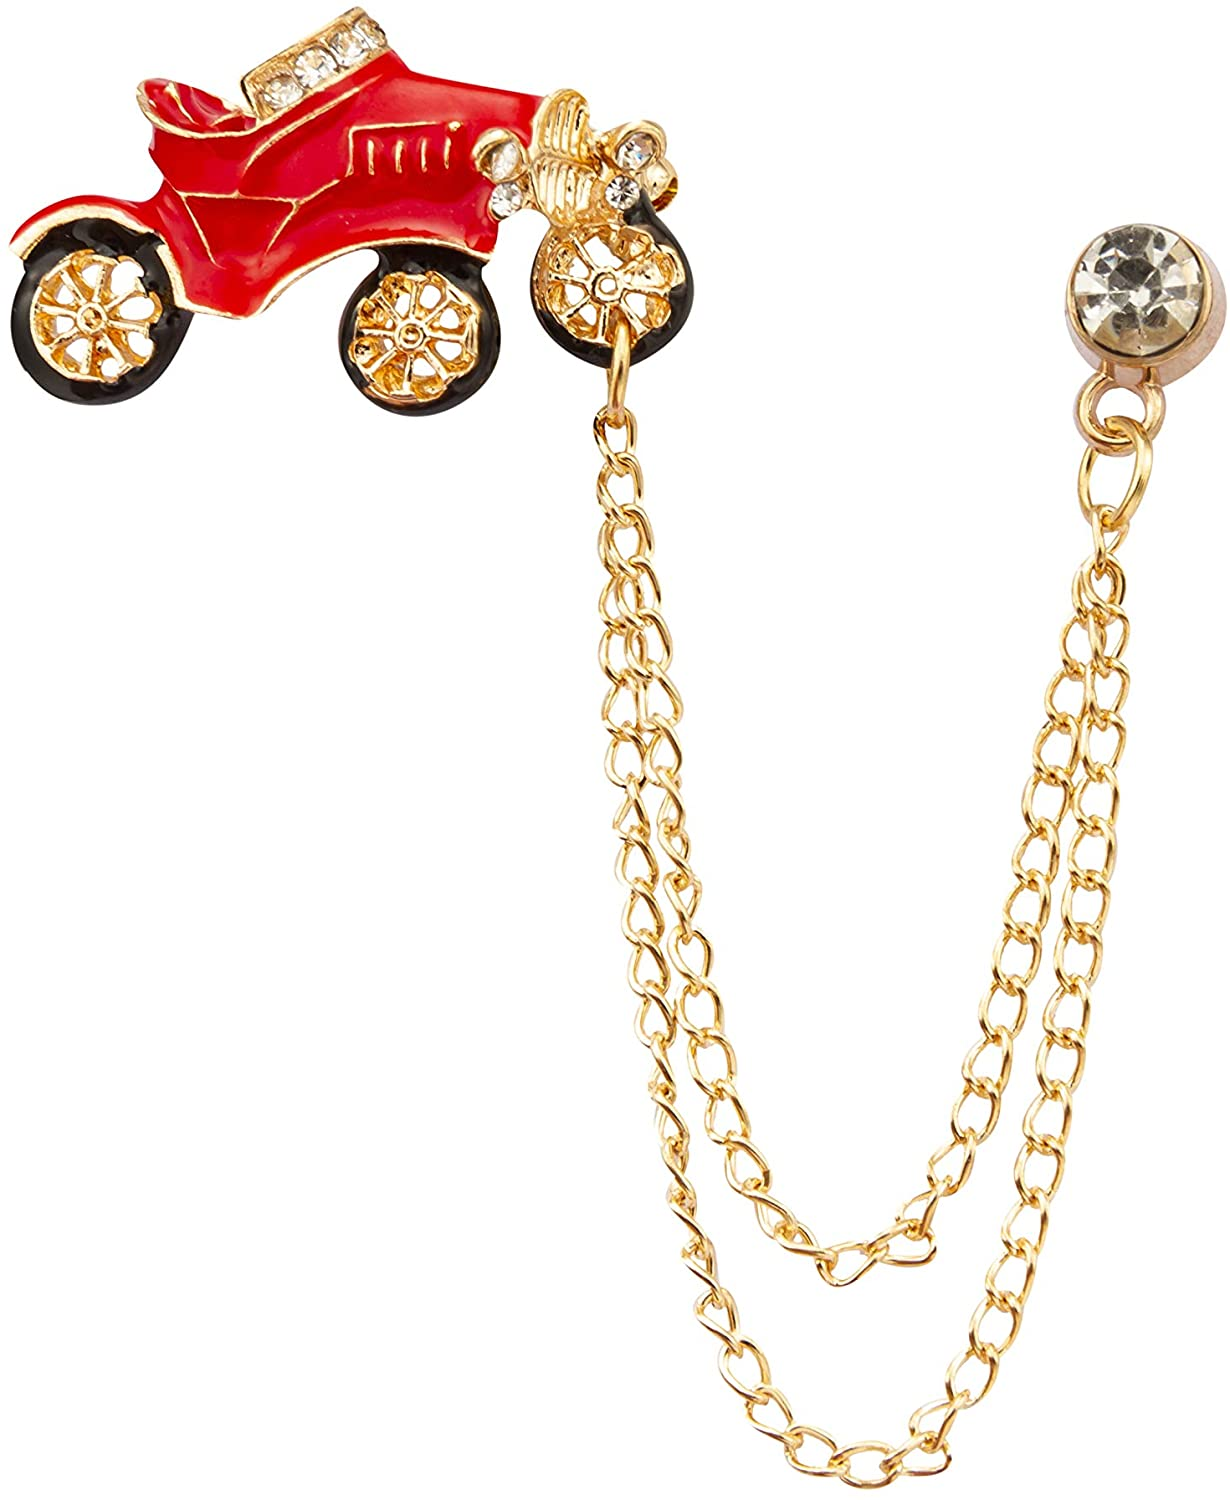 Knighthood Red Vintage Car with Hanging Chain Lapel Pin Badge Coat Suit Jacket Wedding Gift Party Shirt Collar Accessories Brooch